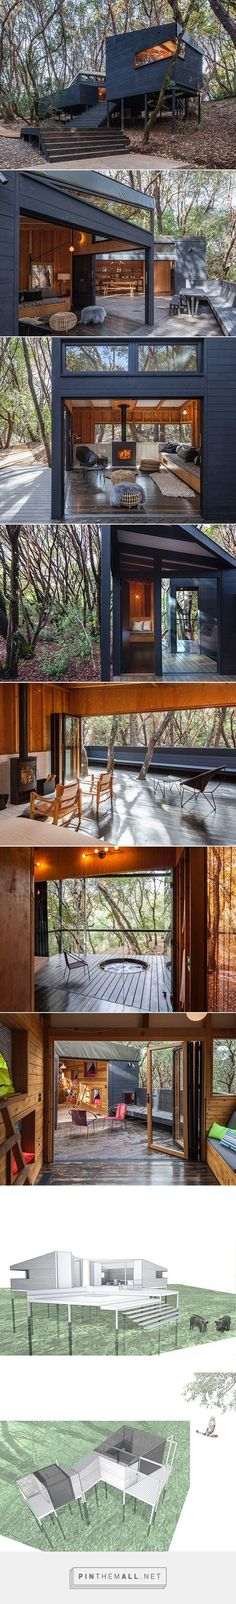 Forest House - envelopeA+D - created via https://pinthemall.net